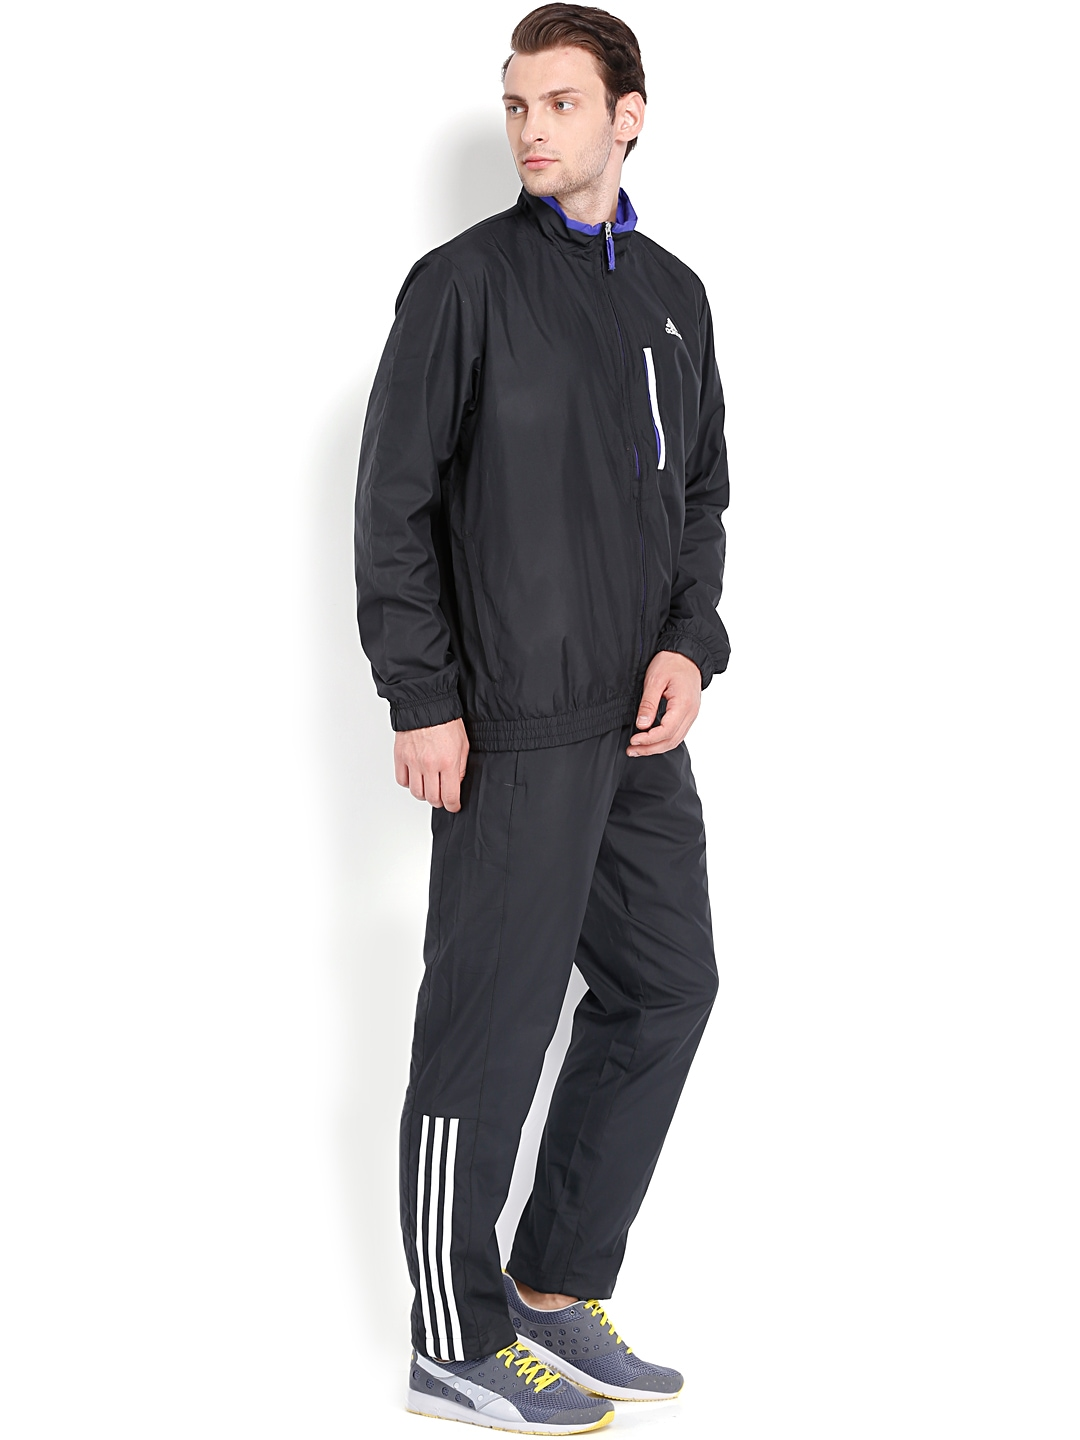 Performance tracksuits Training jackets and track pants that easily pack into themselves will lighten your load, on-the-go. Lightweight, full-zip track jackets designed with climalite® sweat-wicking fabric regulates your body temperature, keeping you cool and dry so you can stay focused on the ball.